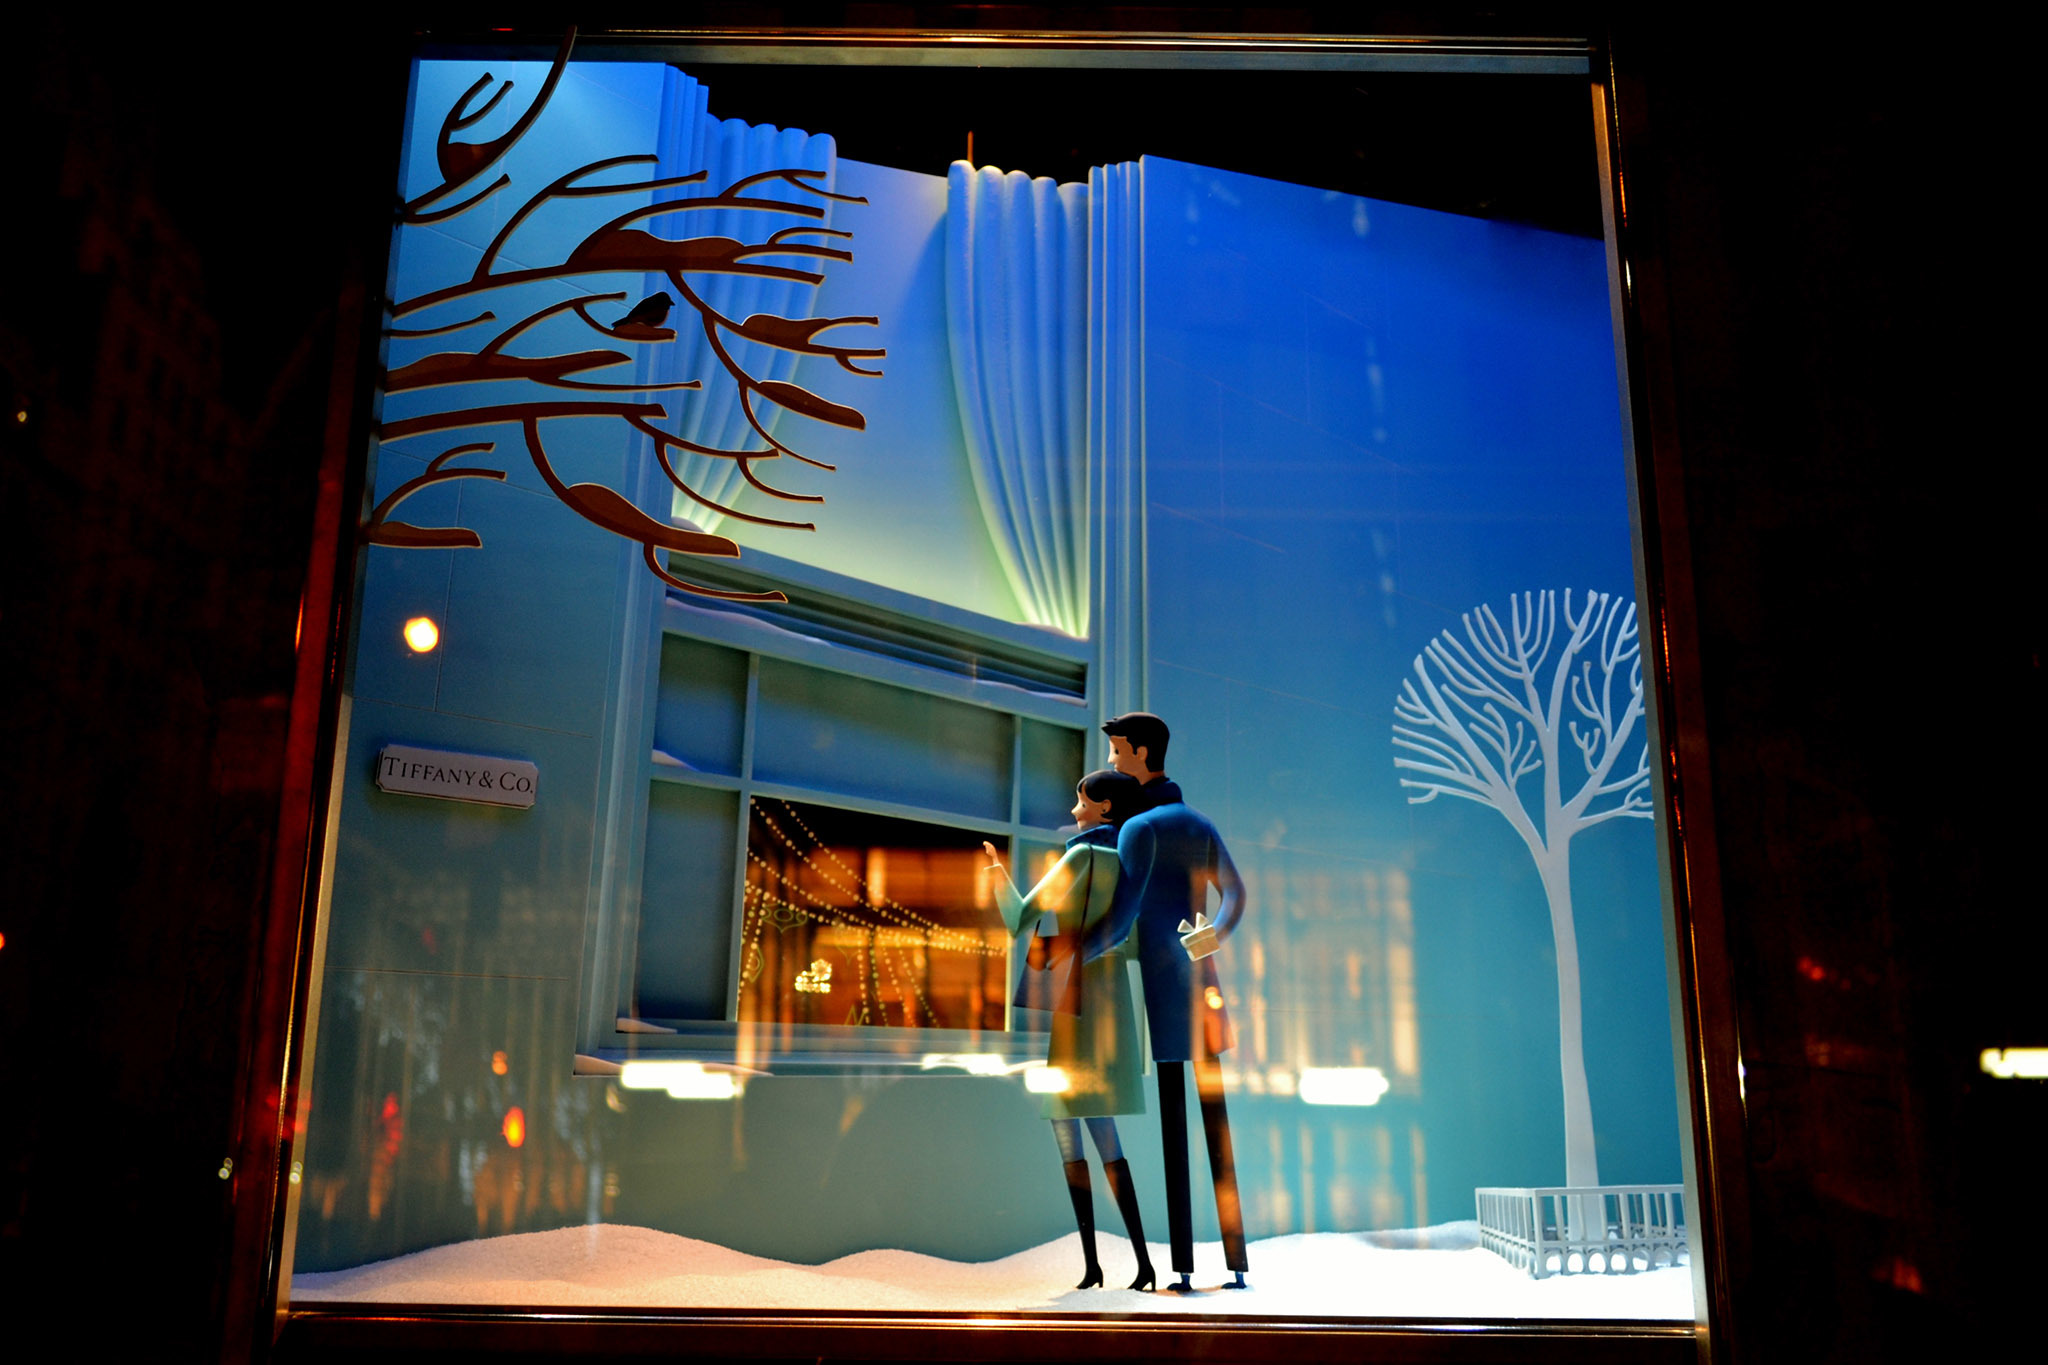 Tiffany & Co. holiday windows